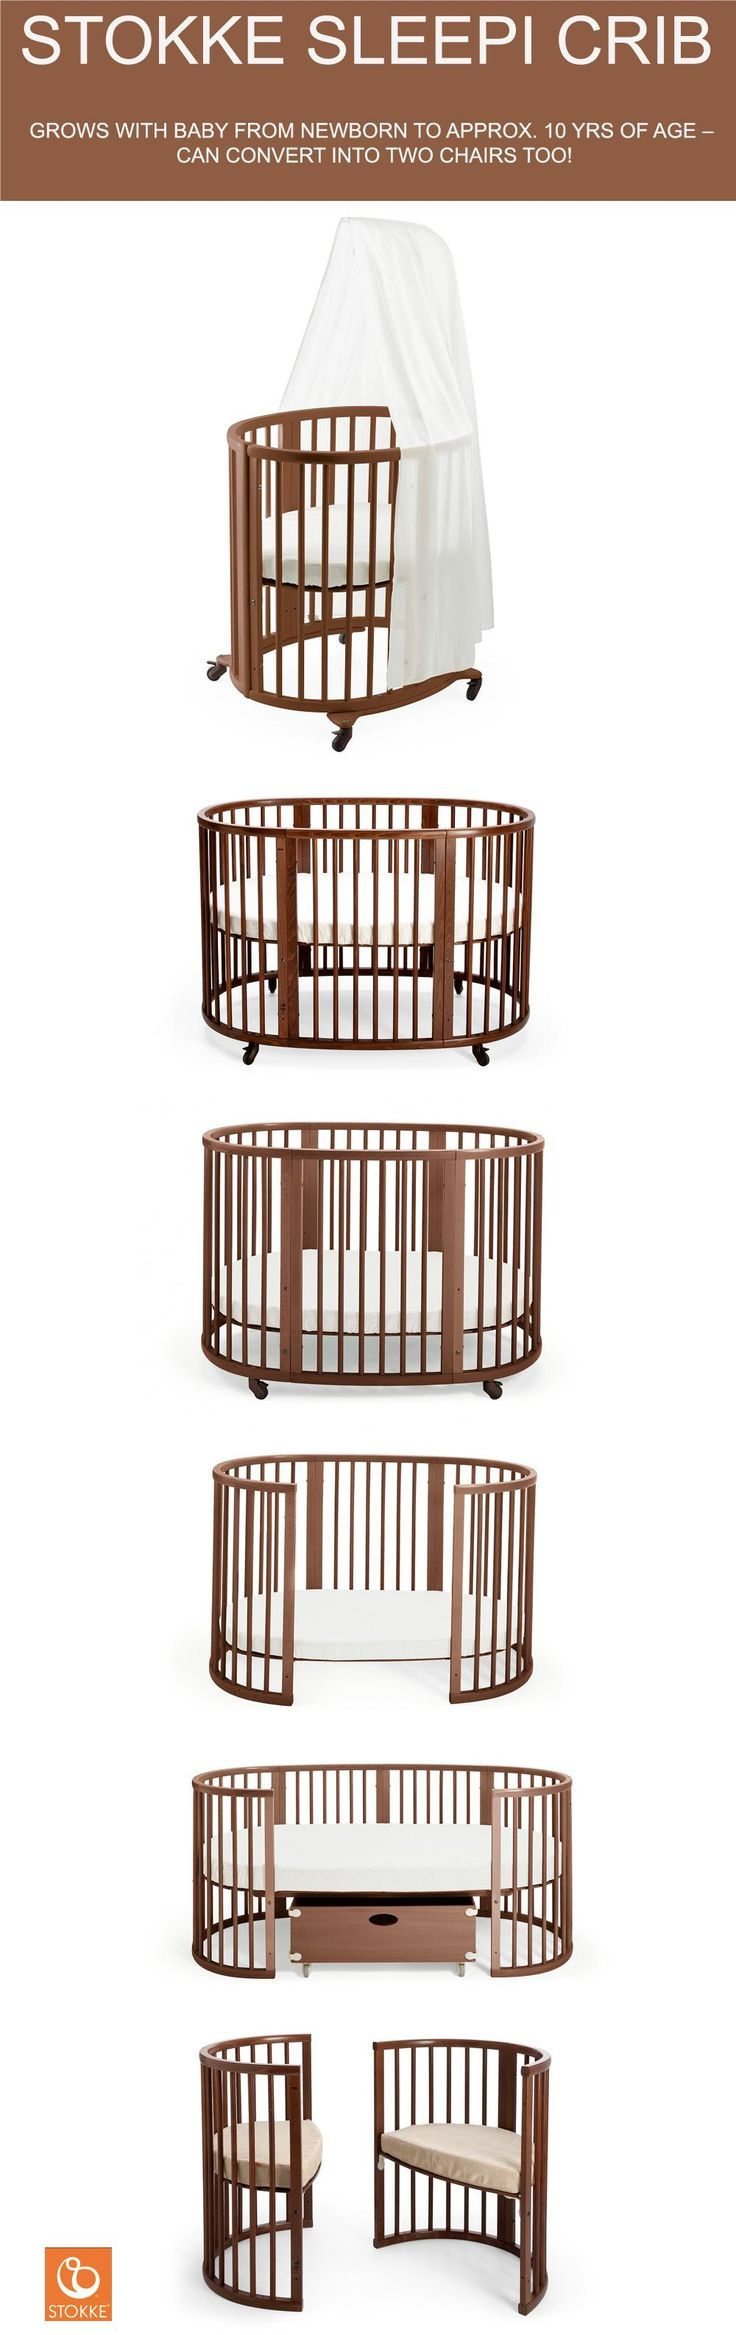 Contemporary white wooden jenny lind crib for your baby to sleep - Stokke Sleepi Convertible Crib Grows With Your Child Comes In White Natural Walnut Wood Beech Wood Sustainable And Modern Design For Your Baby